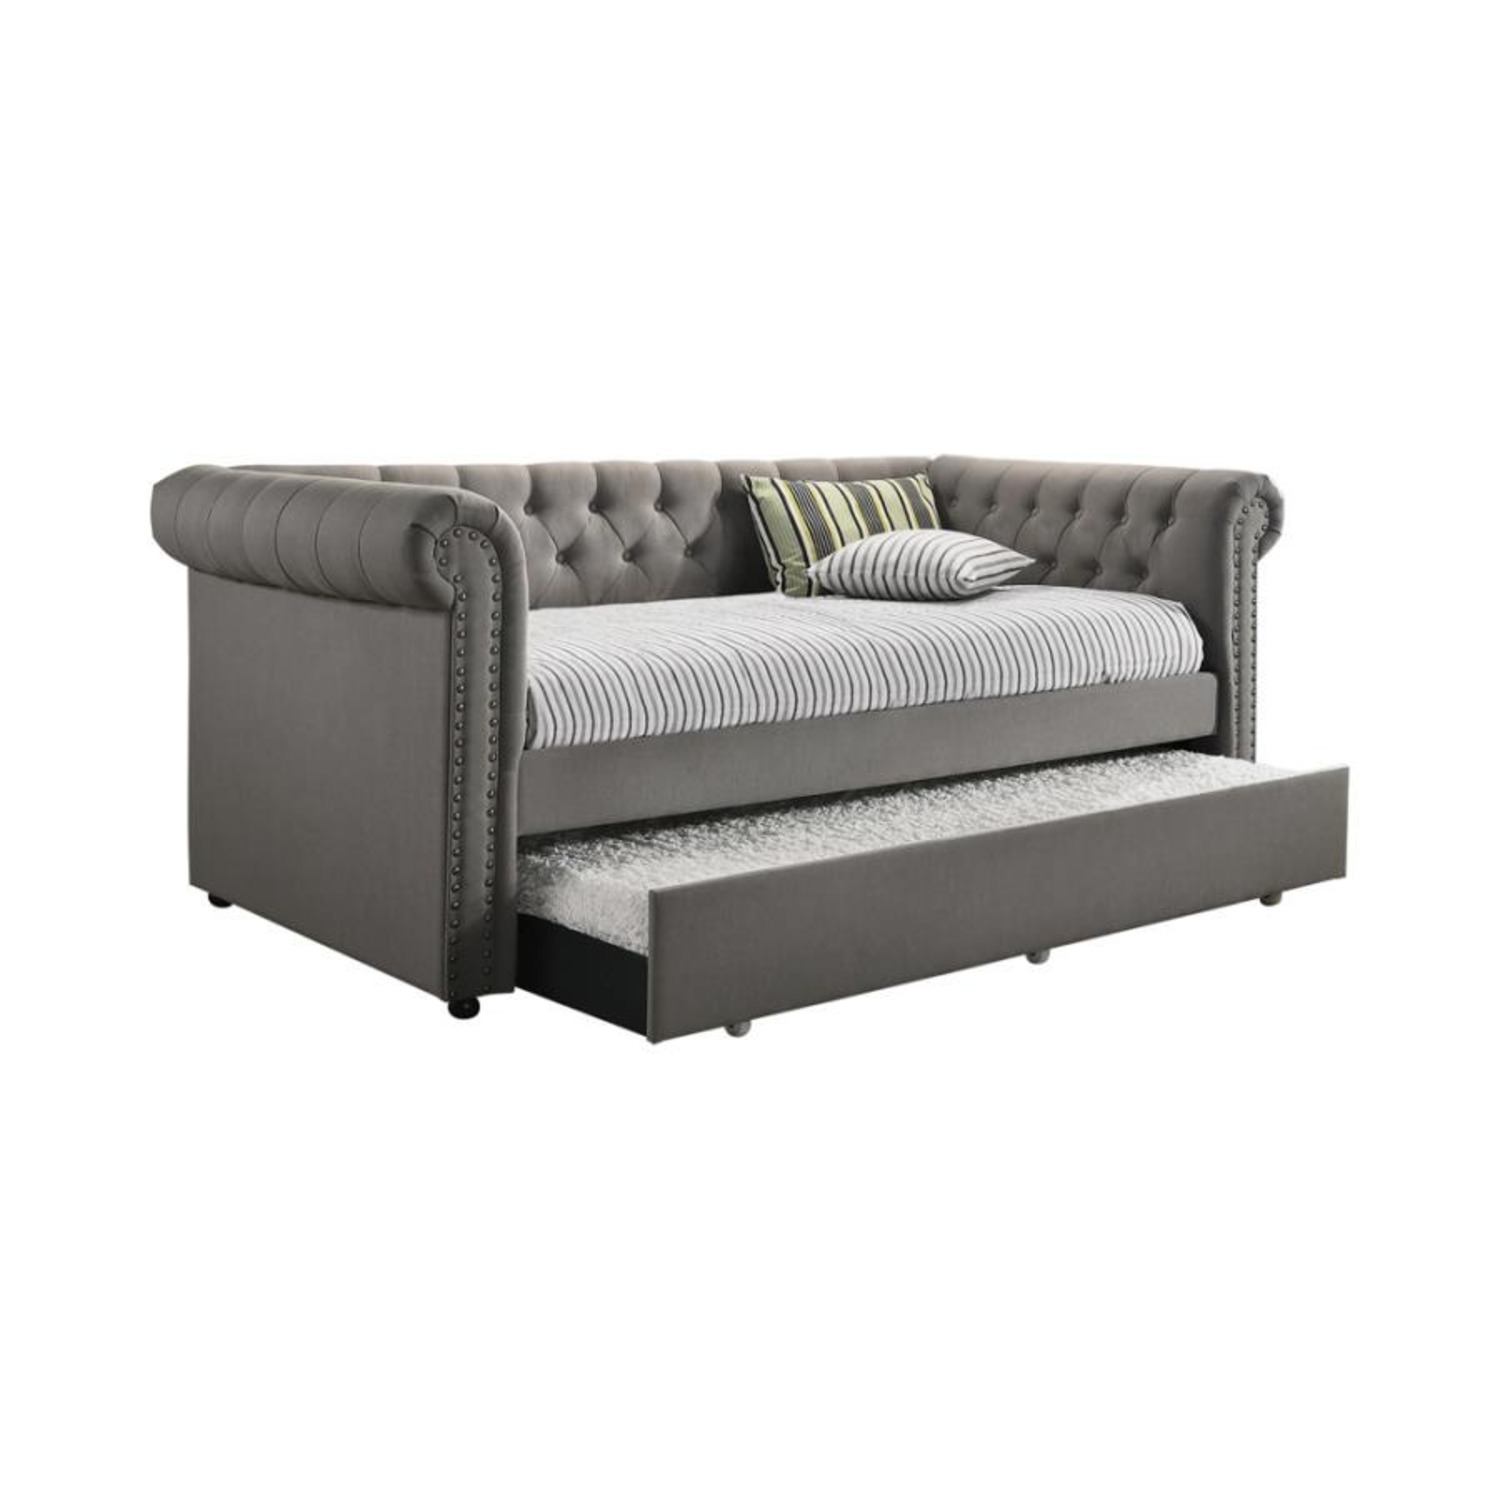 Twin Daybed W/ Trundle In Grey Fabric Upholstery - image-0